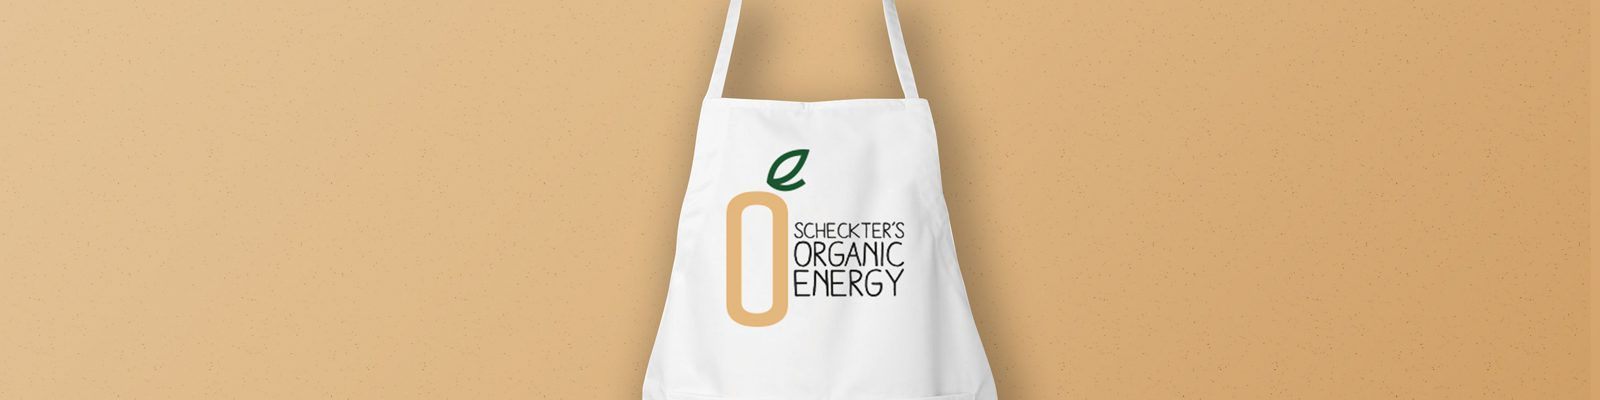 Personalised aprons and printed tote bags for Scheckter's Organic Energy - Header Image